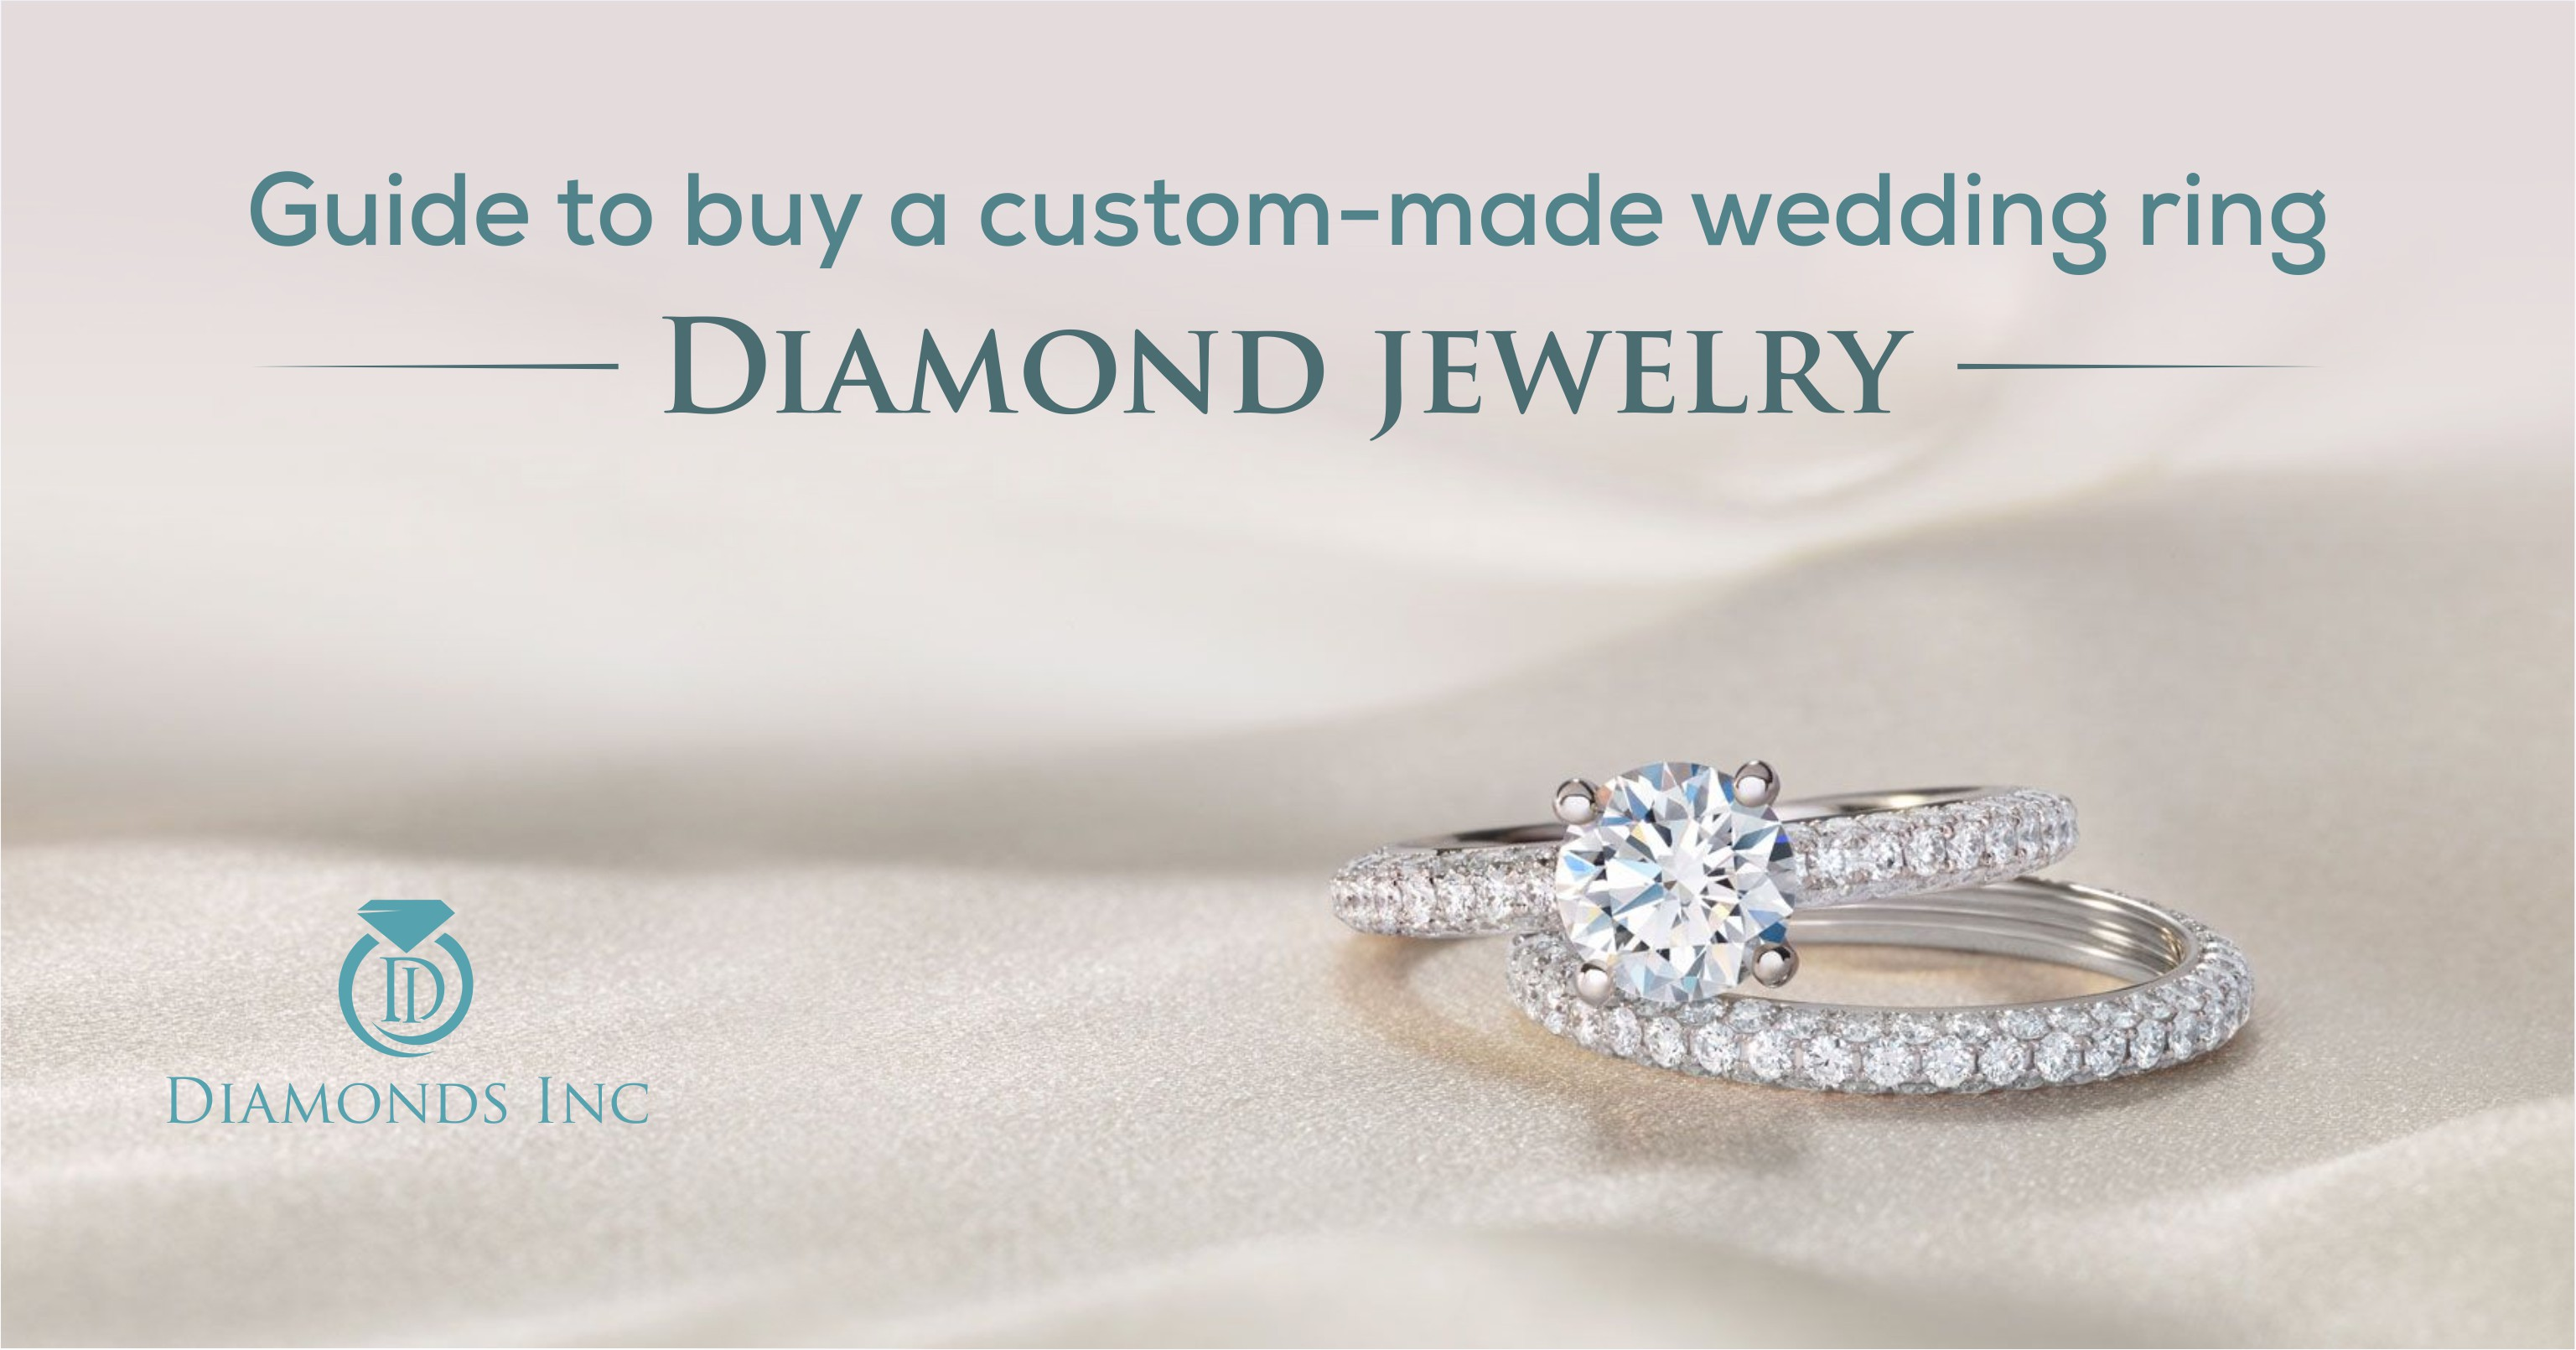 7 tips to buy a custom made wedding ring for your love diamond jewelry guide to buy a custom made wedding ring diamond jewelry aloadofball Images